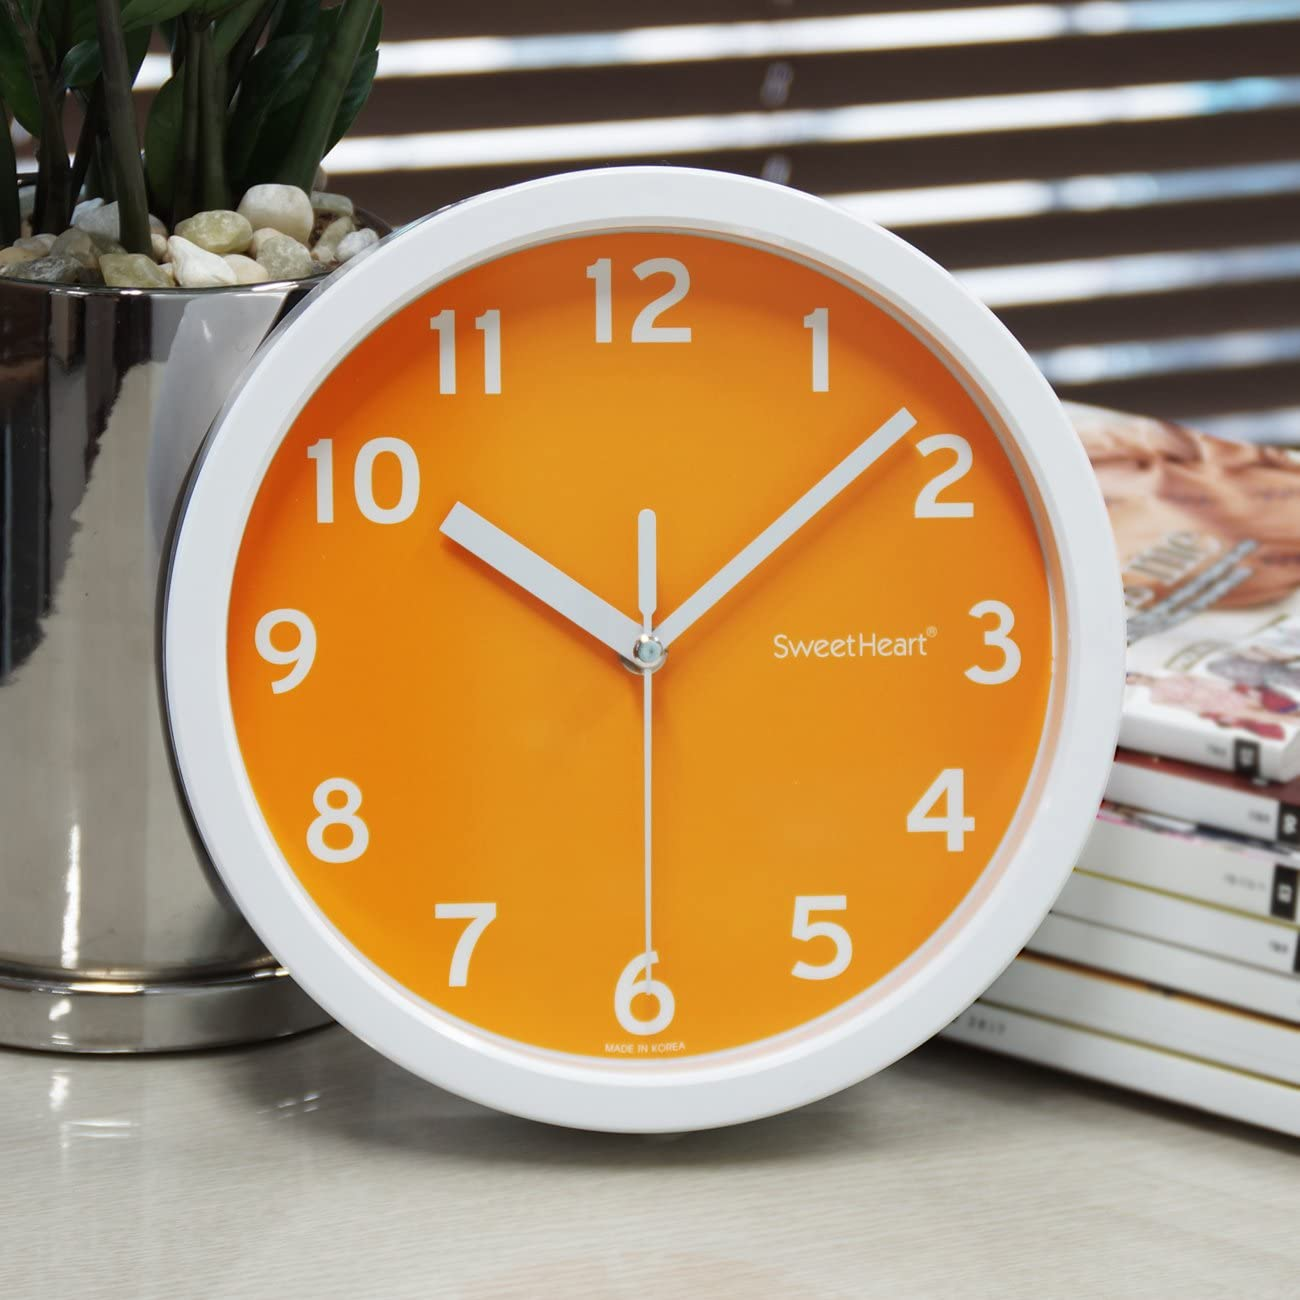 Decowall Silent Smoothie Wall Clock Orange